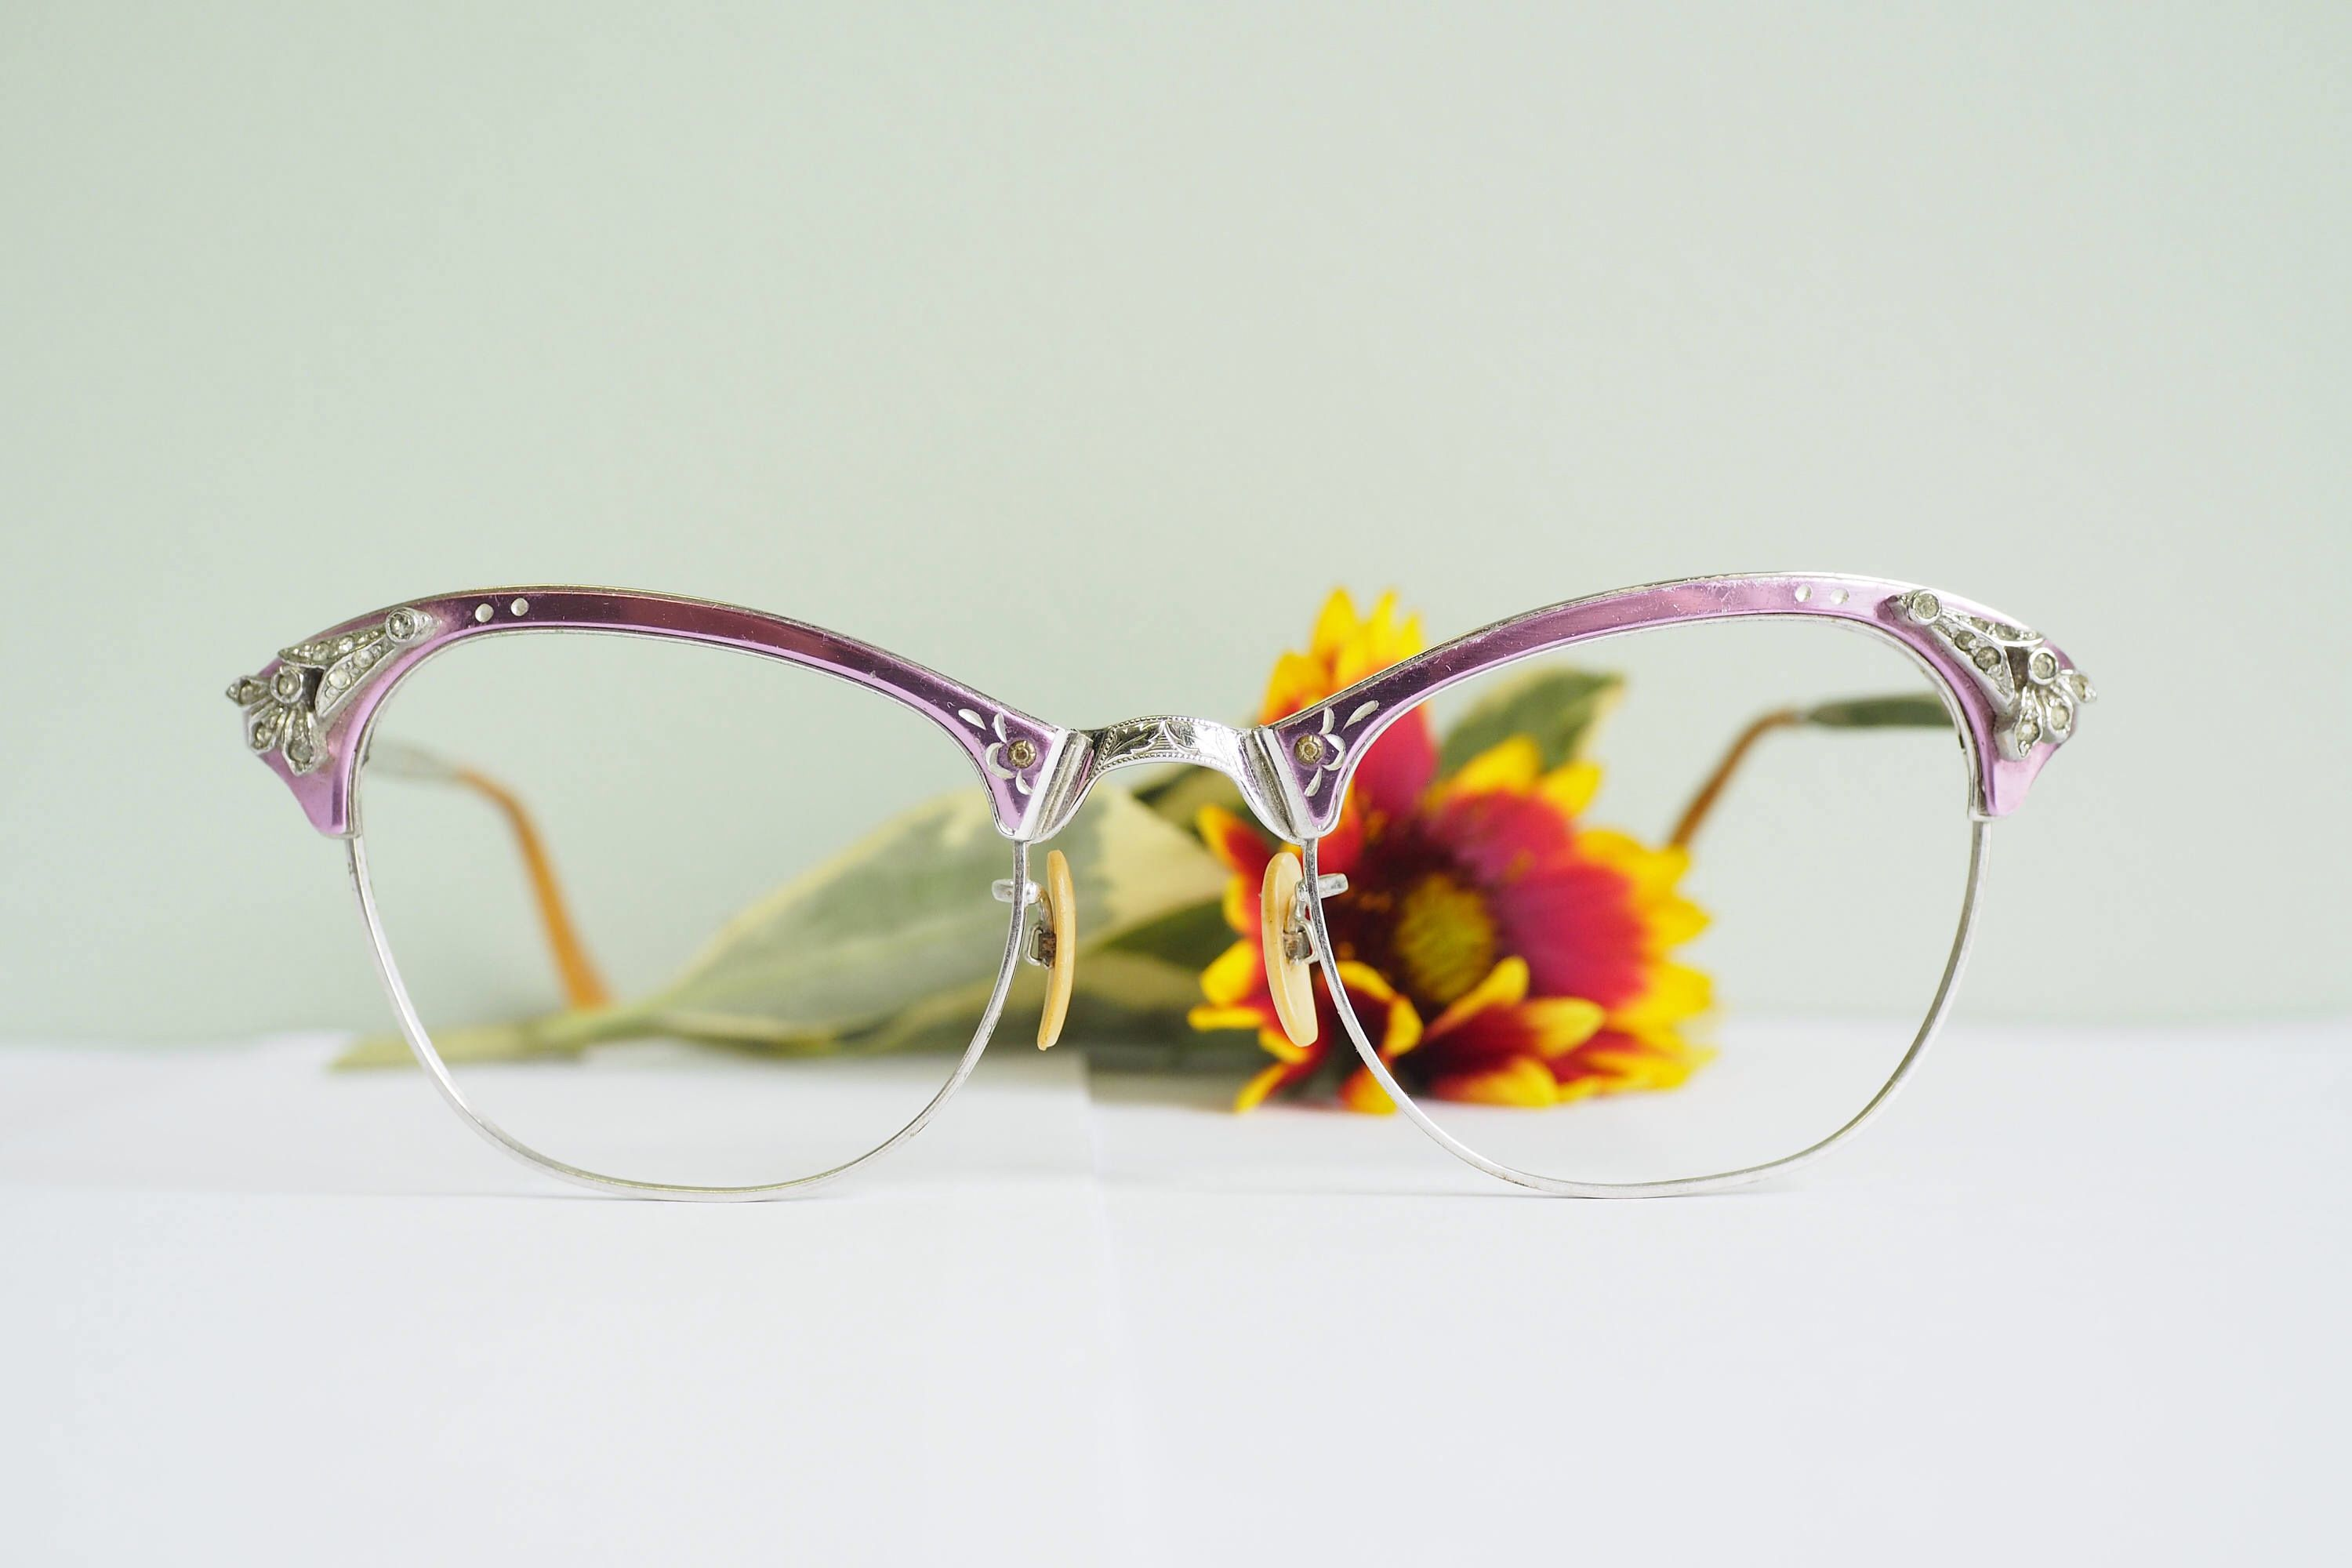 Vintage Cat Eye Frames 1960's Cateye Frames new Old Stock Glasses All aluminium Frame metallic Pink With Rhinestones 1/10  12K gold filled by hisandhervintage on Etsy https://www.etsy.com/listing/549019266/vintage-cat-eye-frames-1960s-cateye